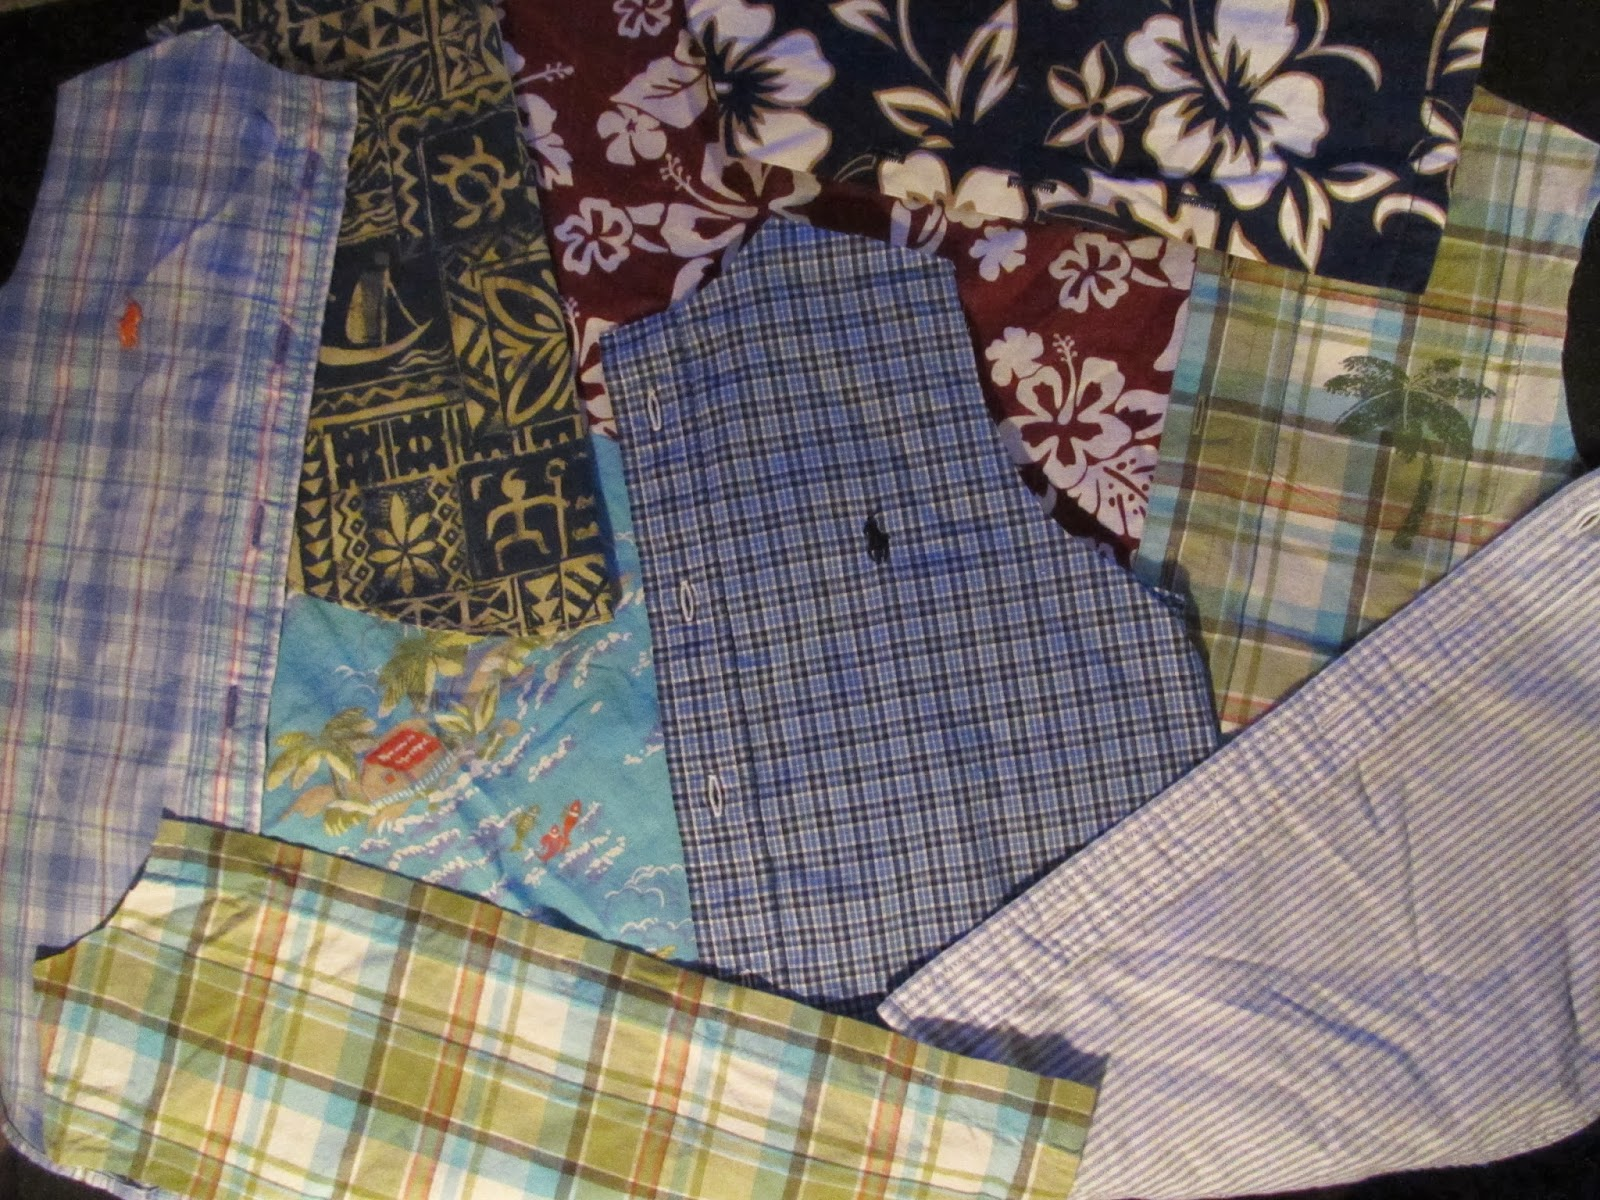 Thread, Fiber, Fabric, Paint: Recycled Clothes Quilt